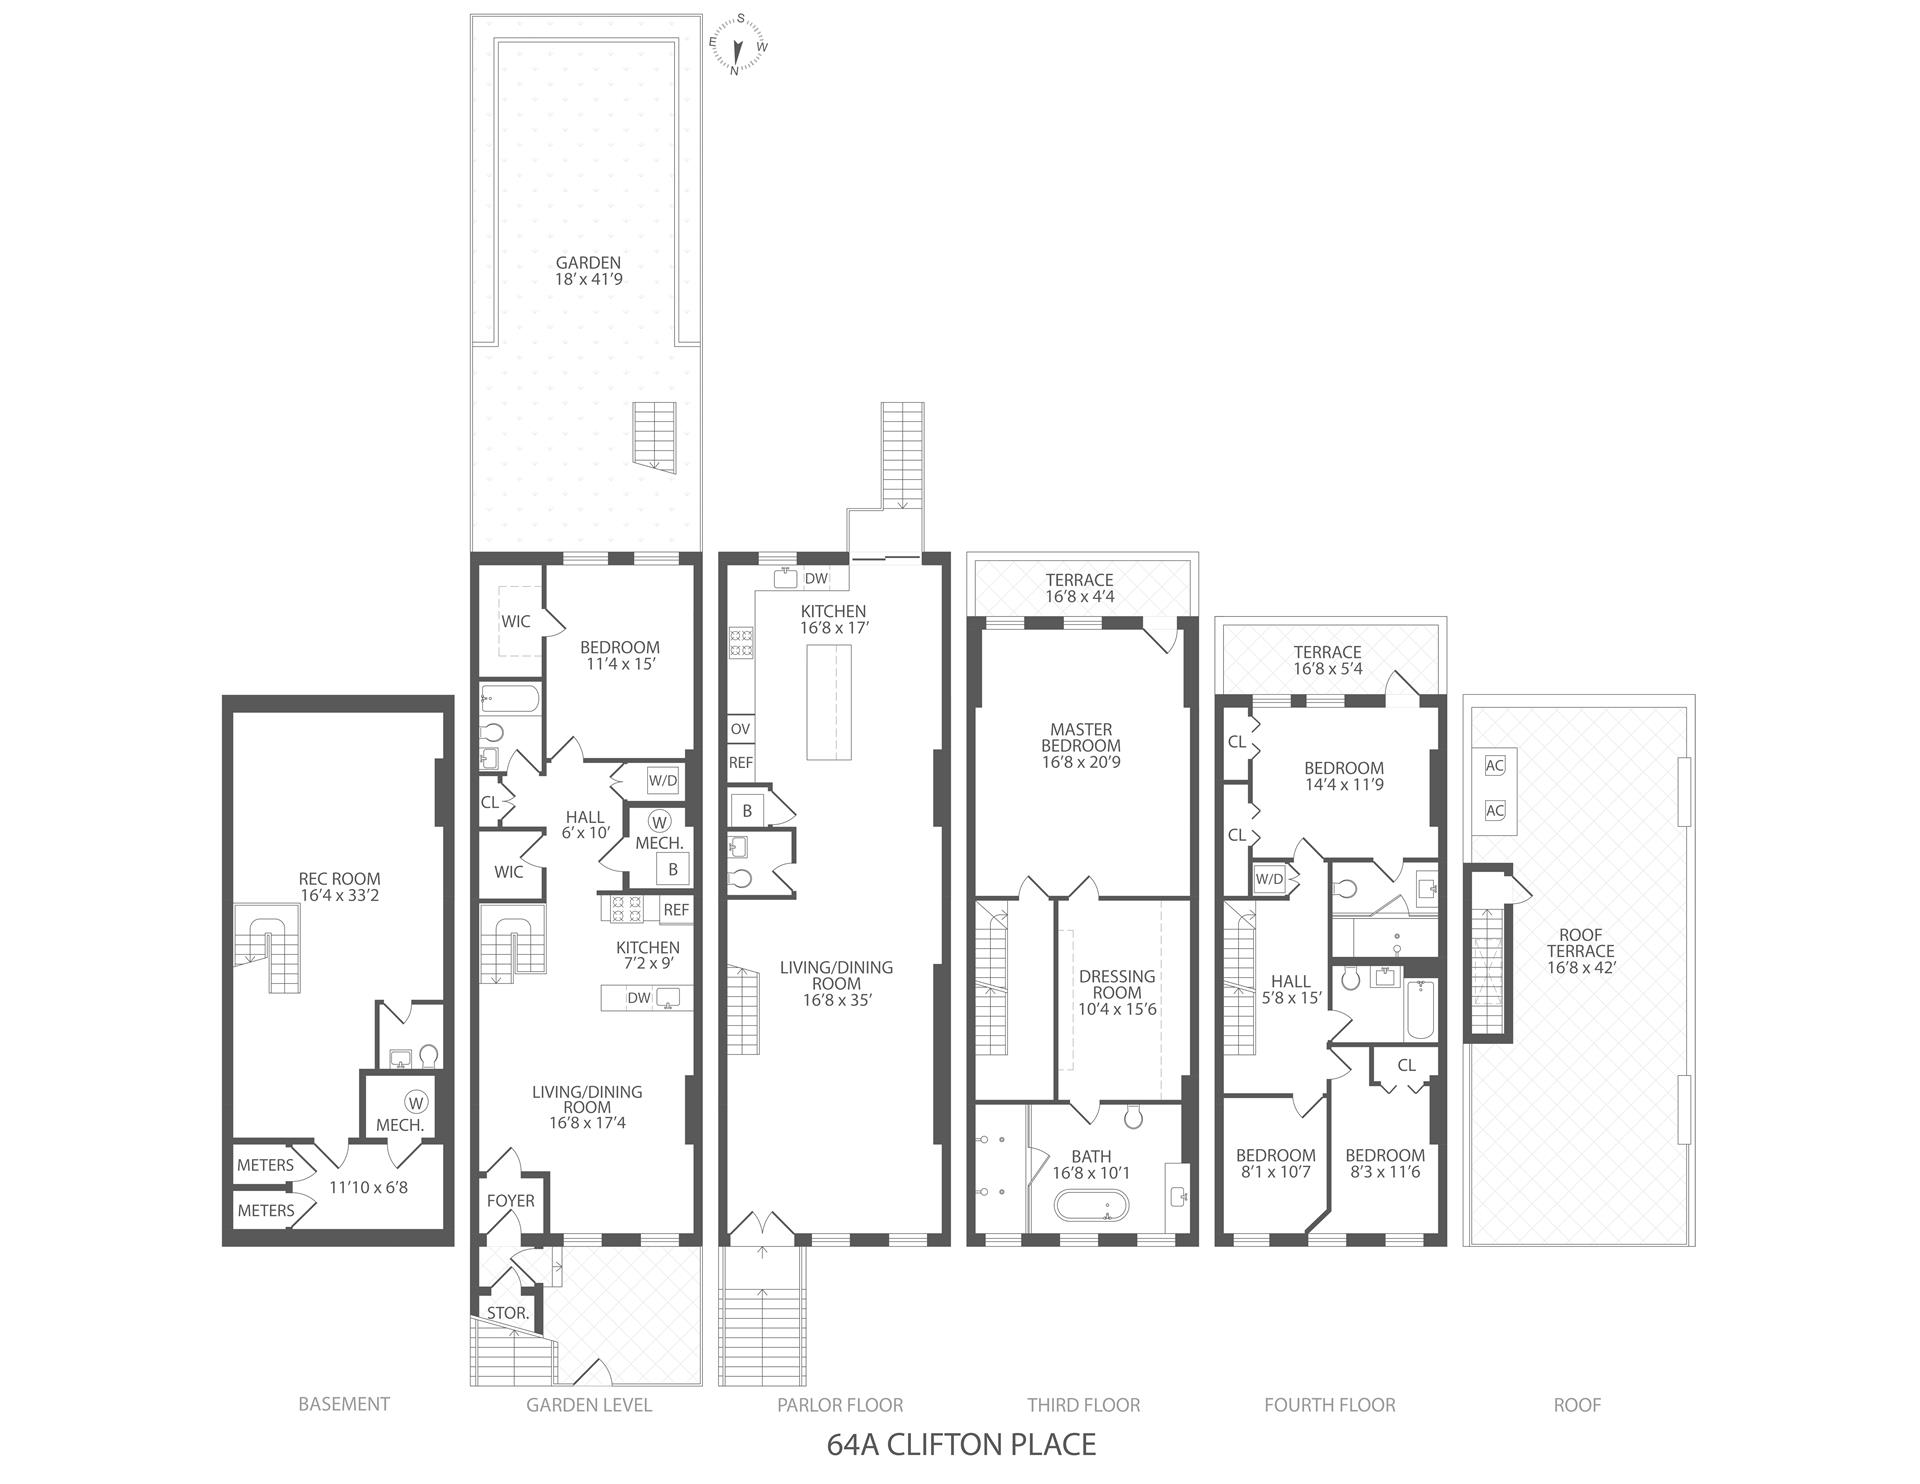 Floor plan of 64A Clifton Pl - Clinton Hill, New York